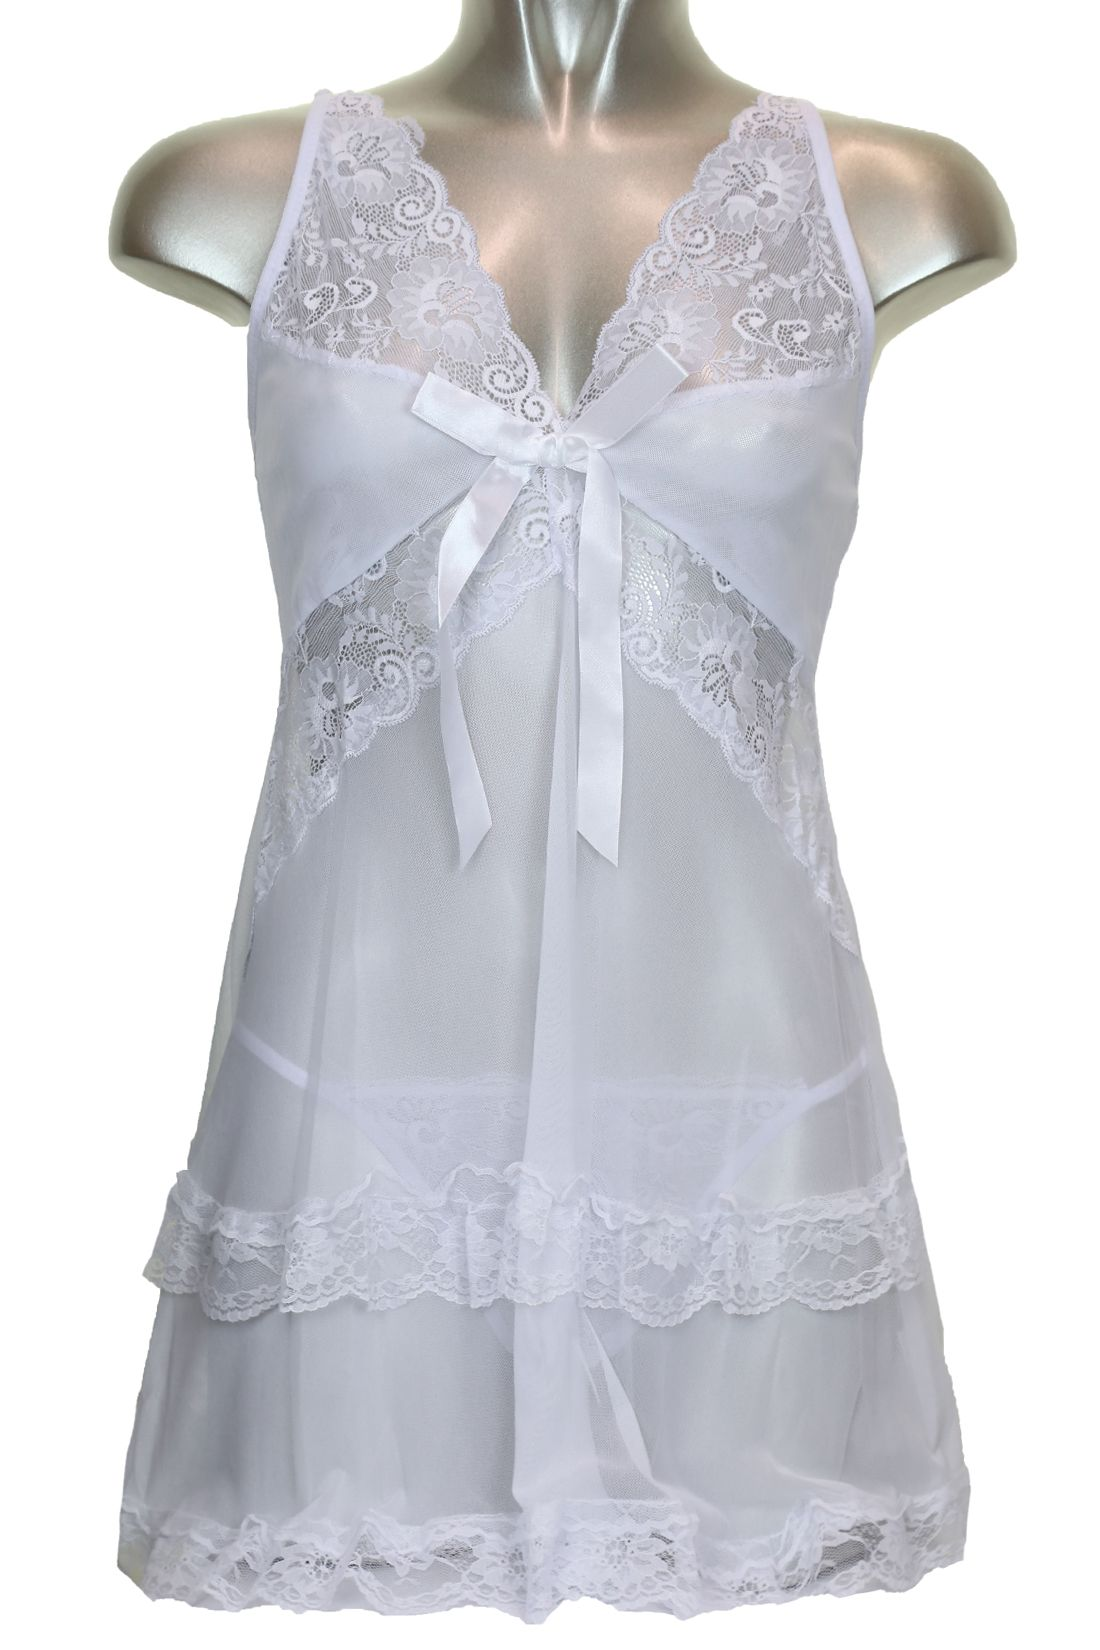 new york 100% genuine discount sale White Lace Babydoll Negligee Set